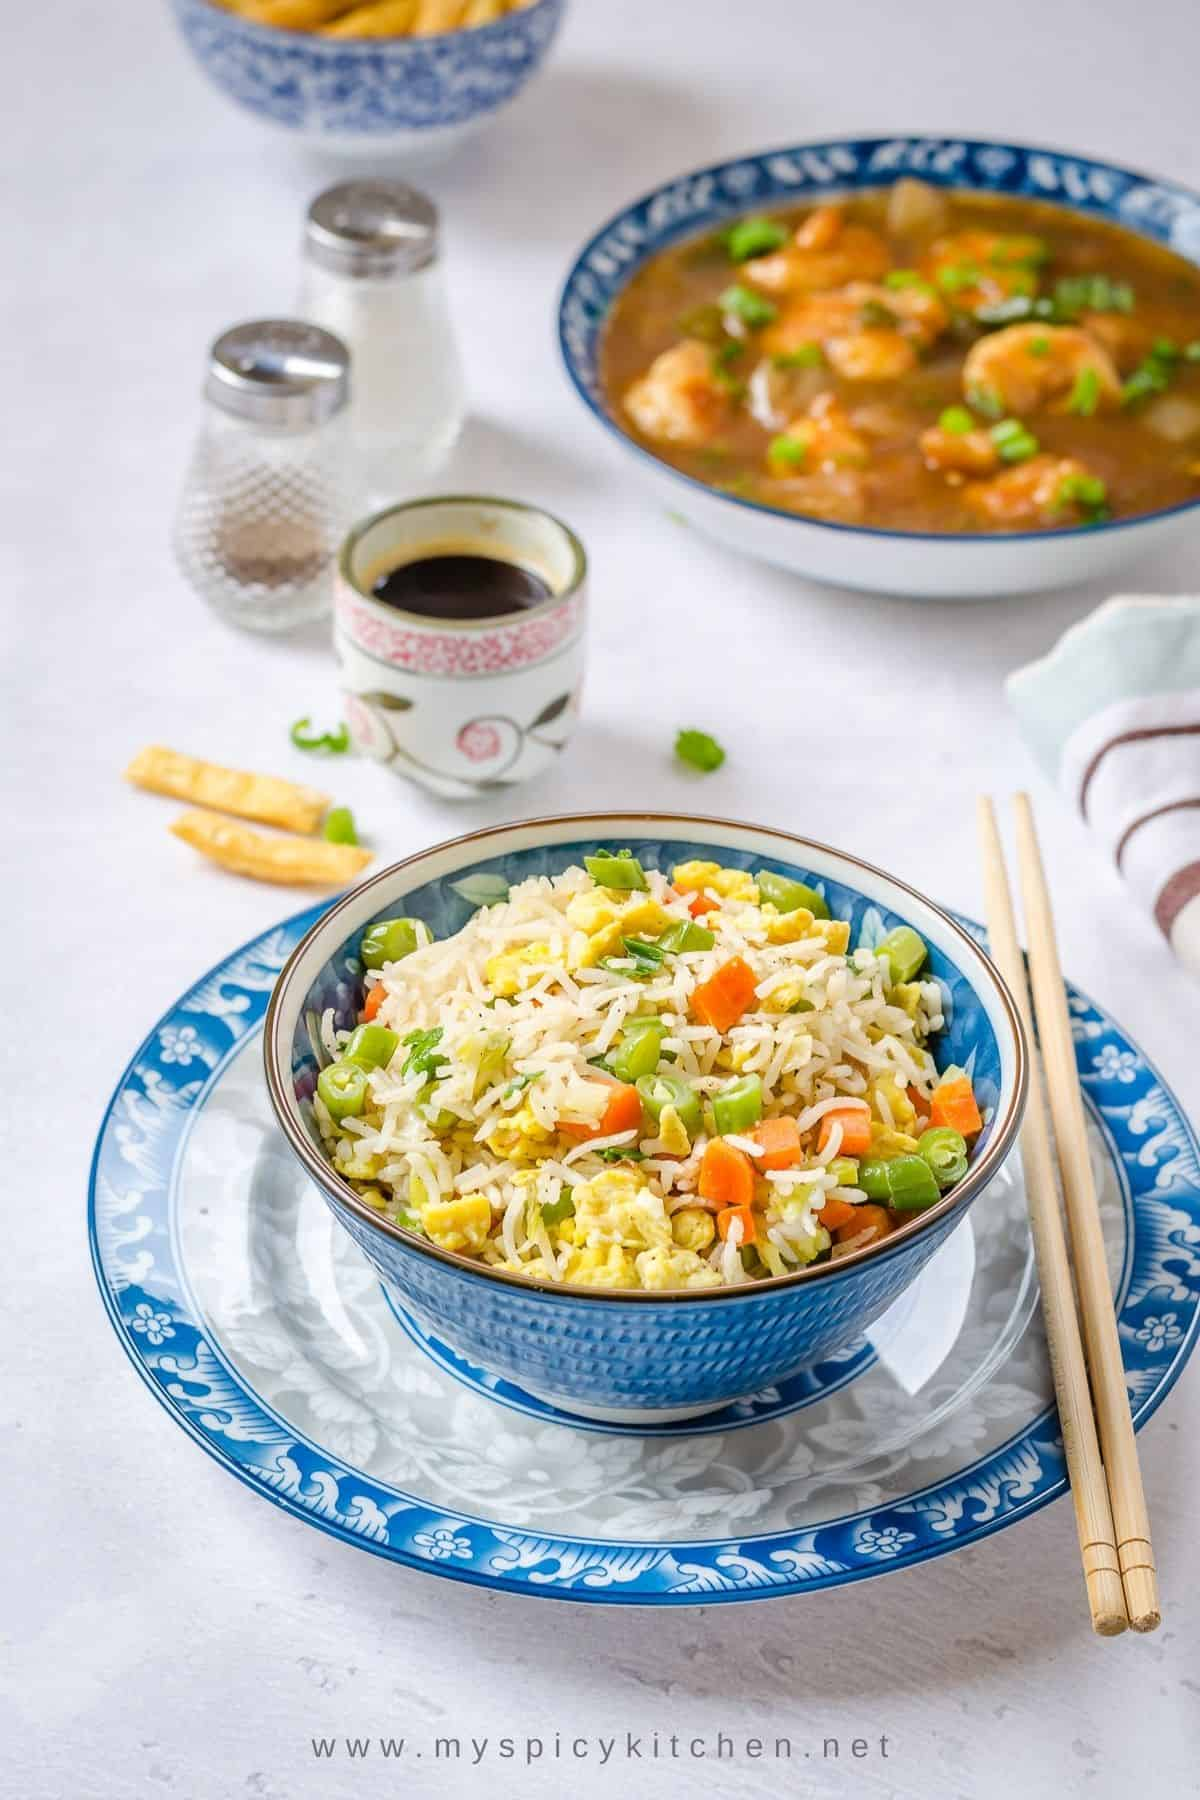 A flavorful bowl of egg fried rice.